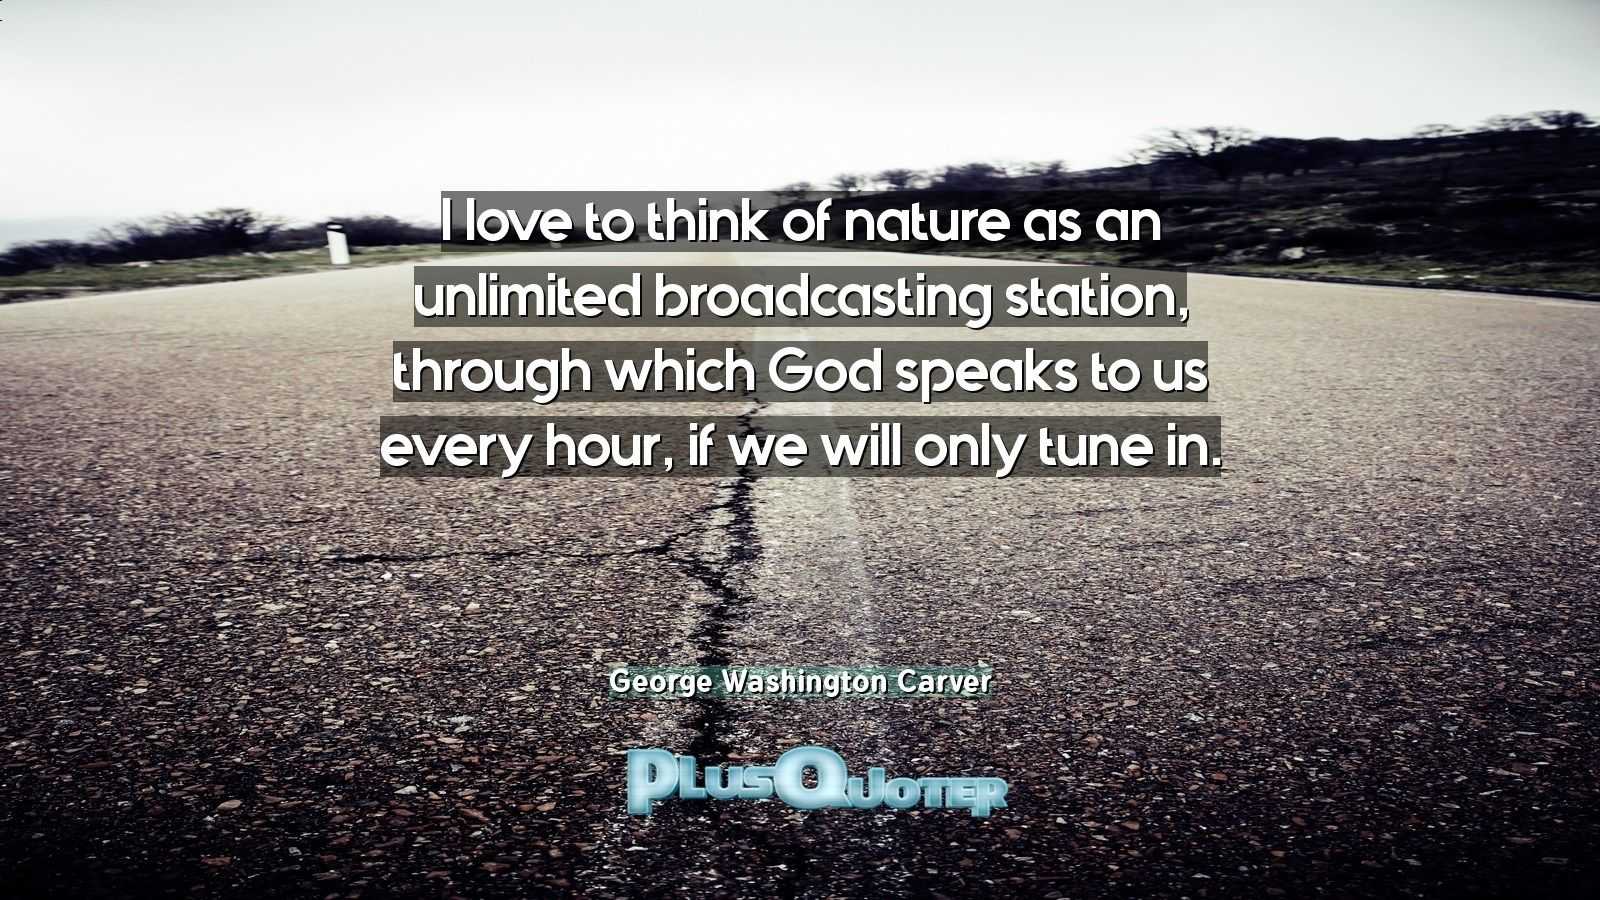 I Love To Think Of Nature As An Unlimited Broadcasting